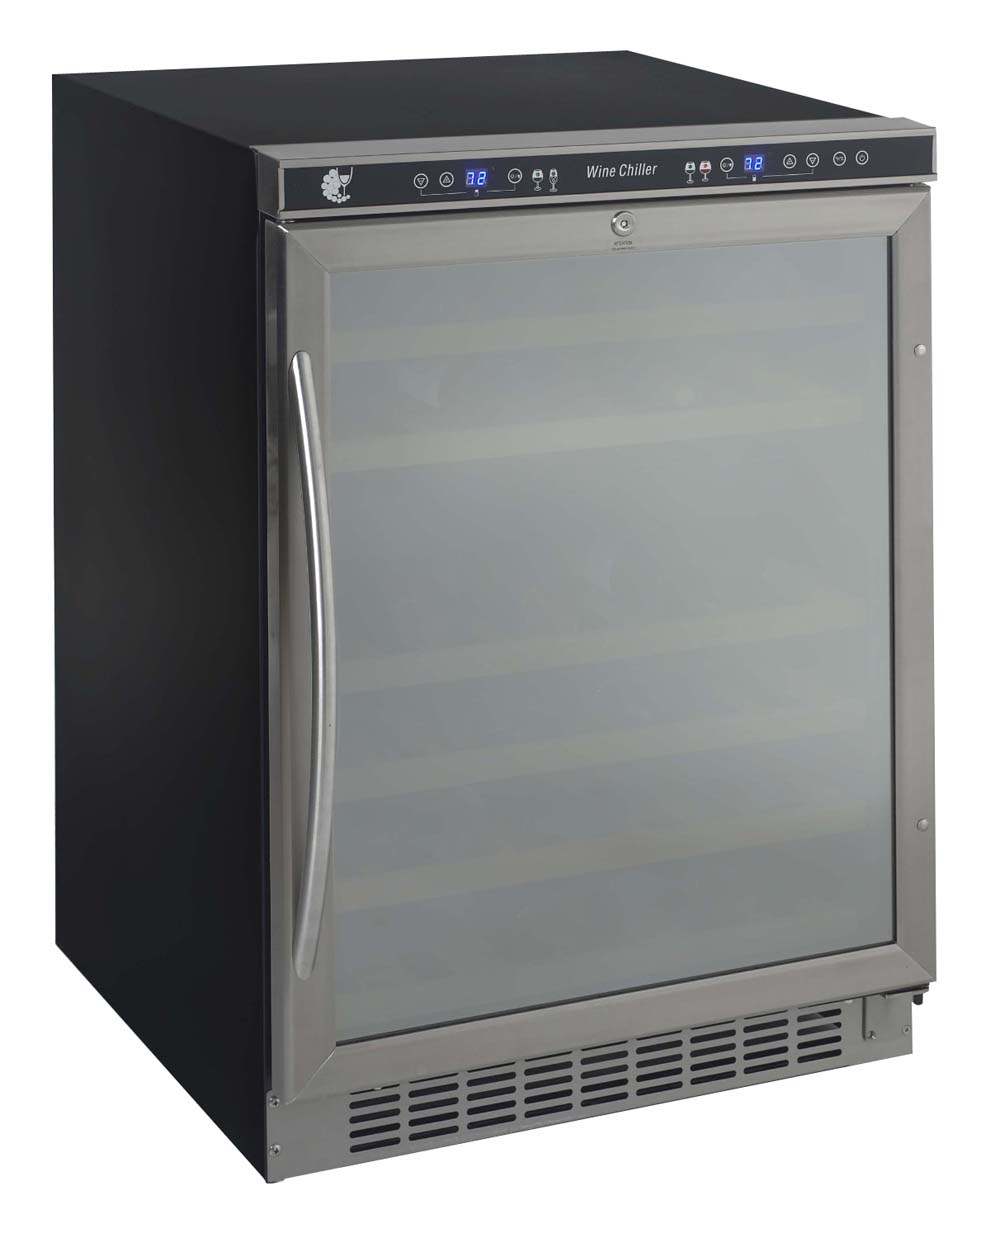 avanti wcr5404dzd wine cooler - Built In Wine Cooler